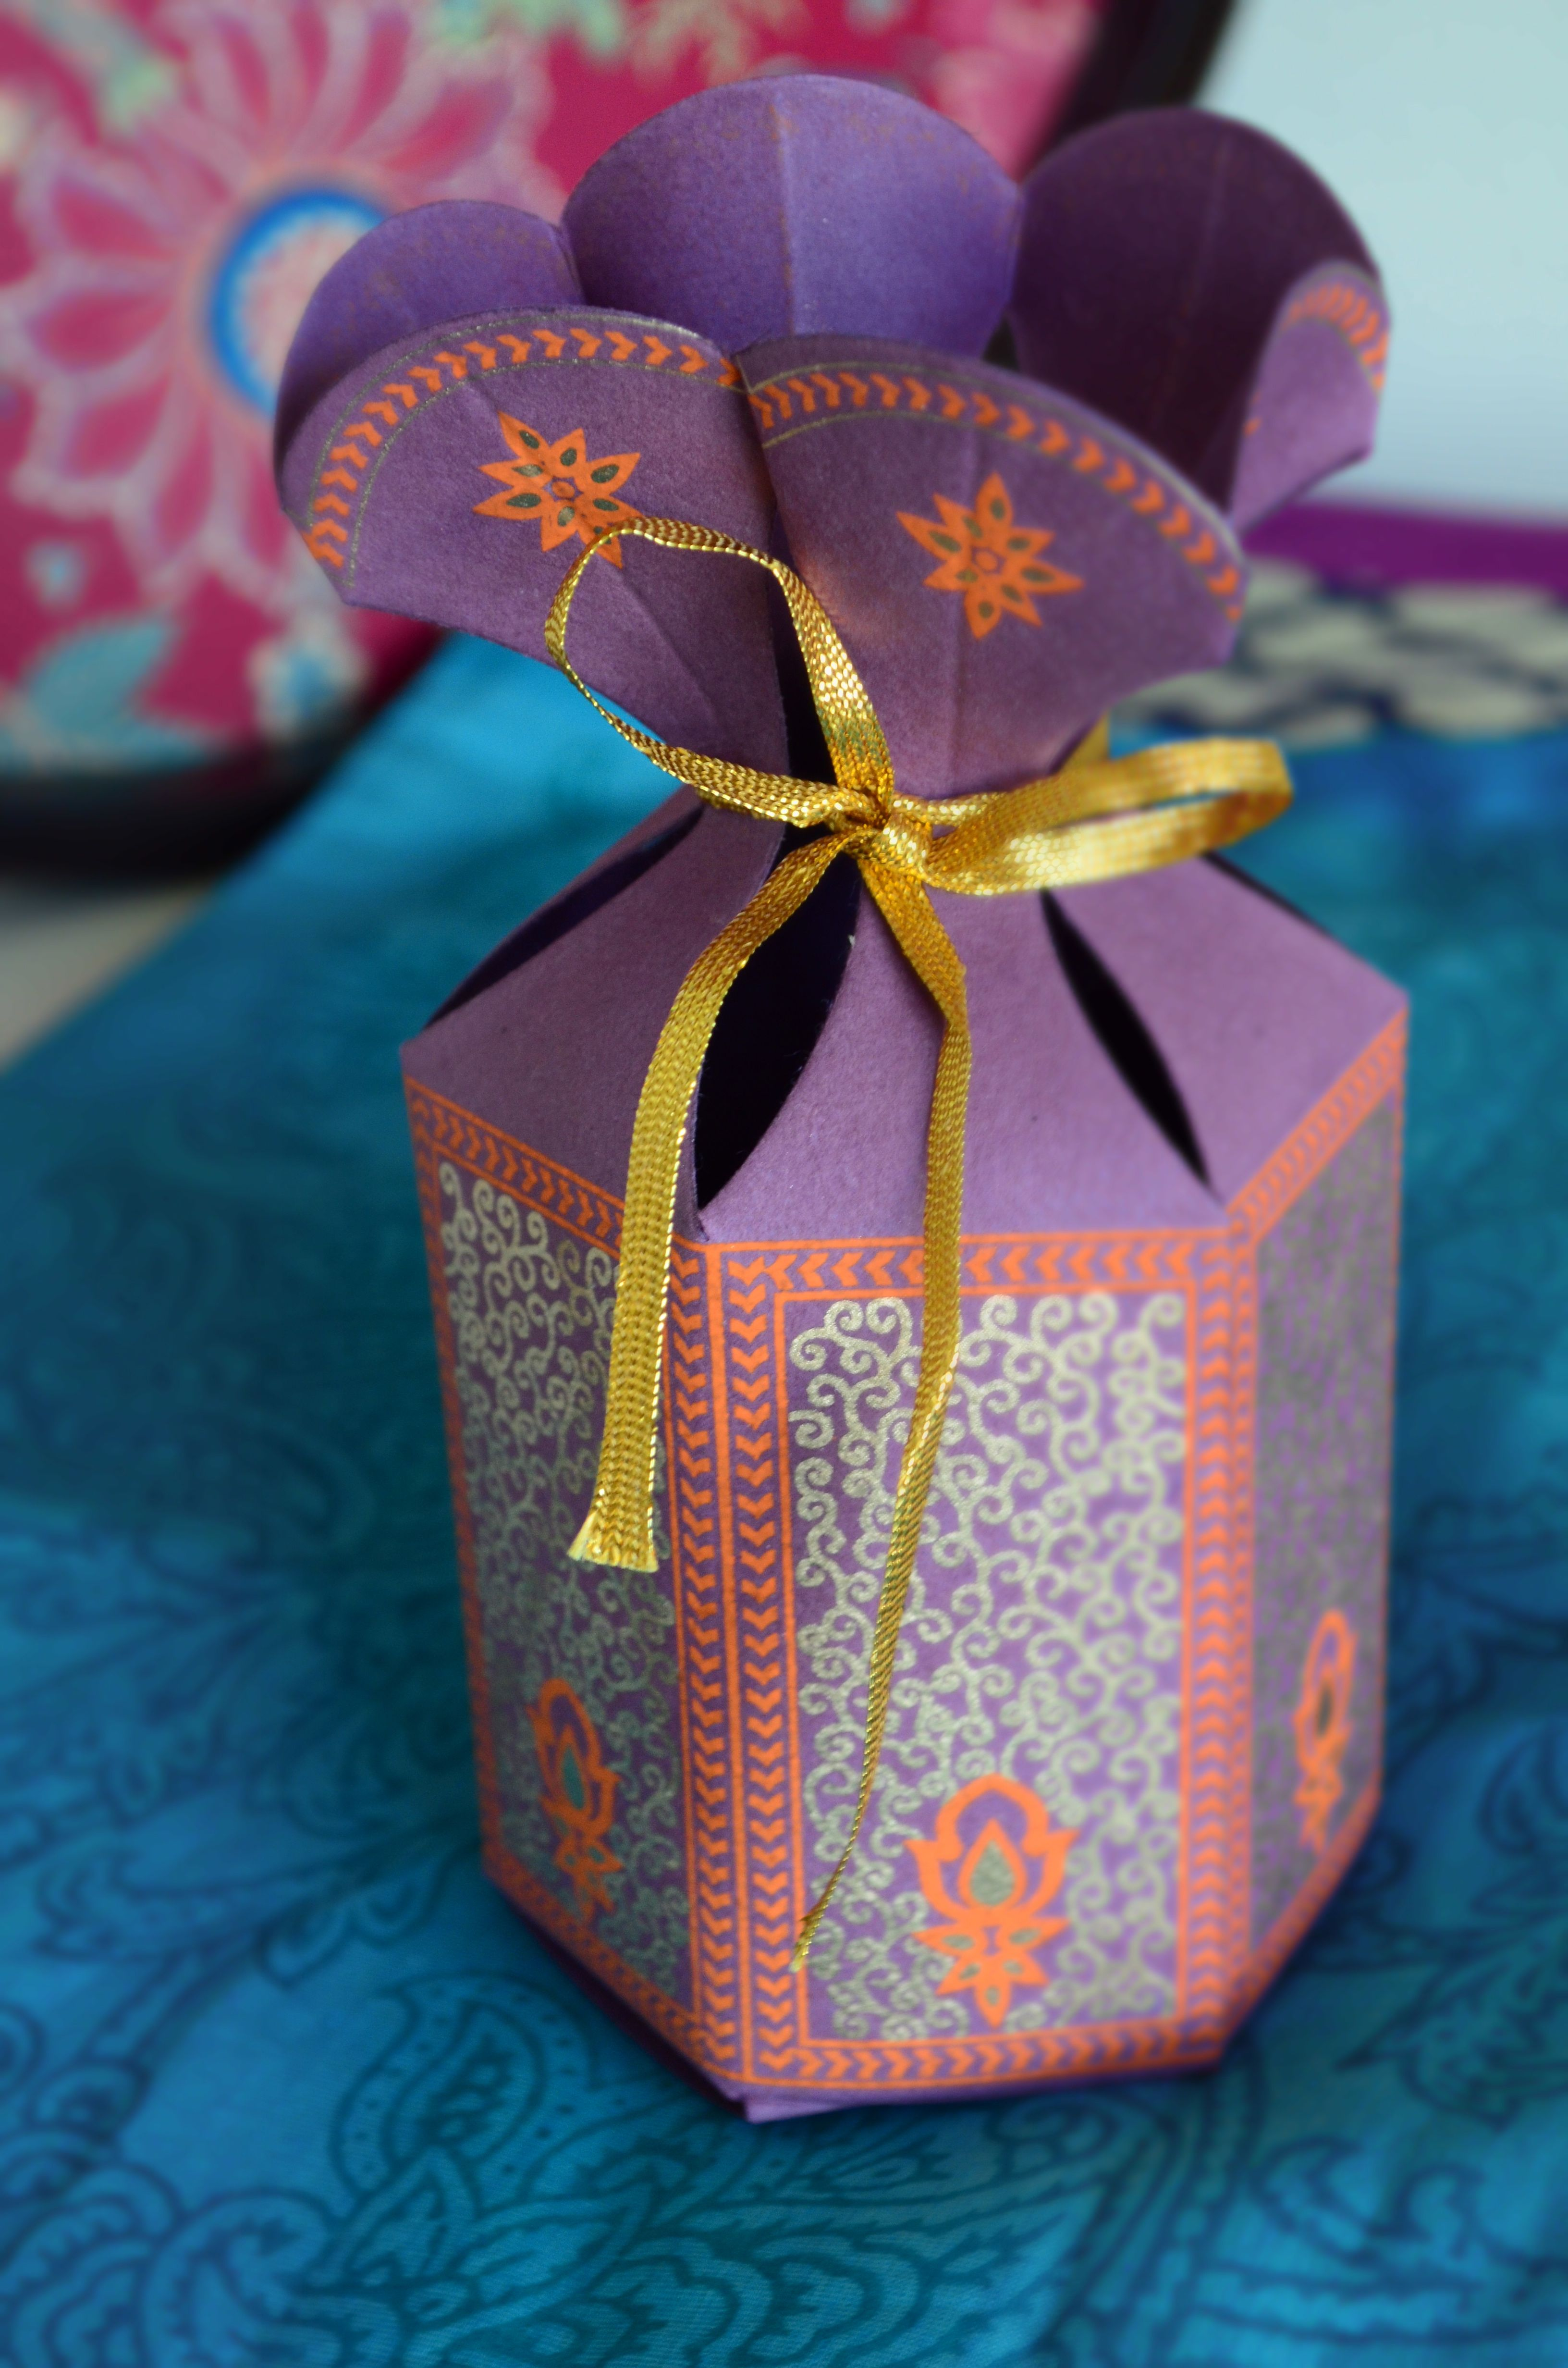 Standing hexagon pouch design with gold ribbon when easily